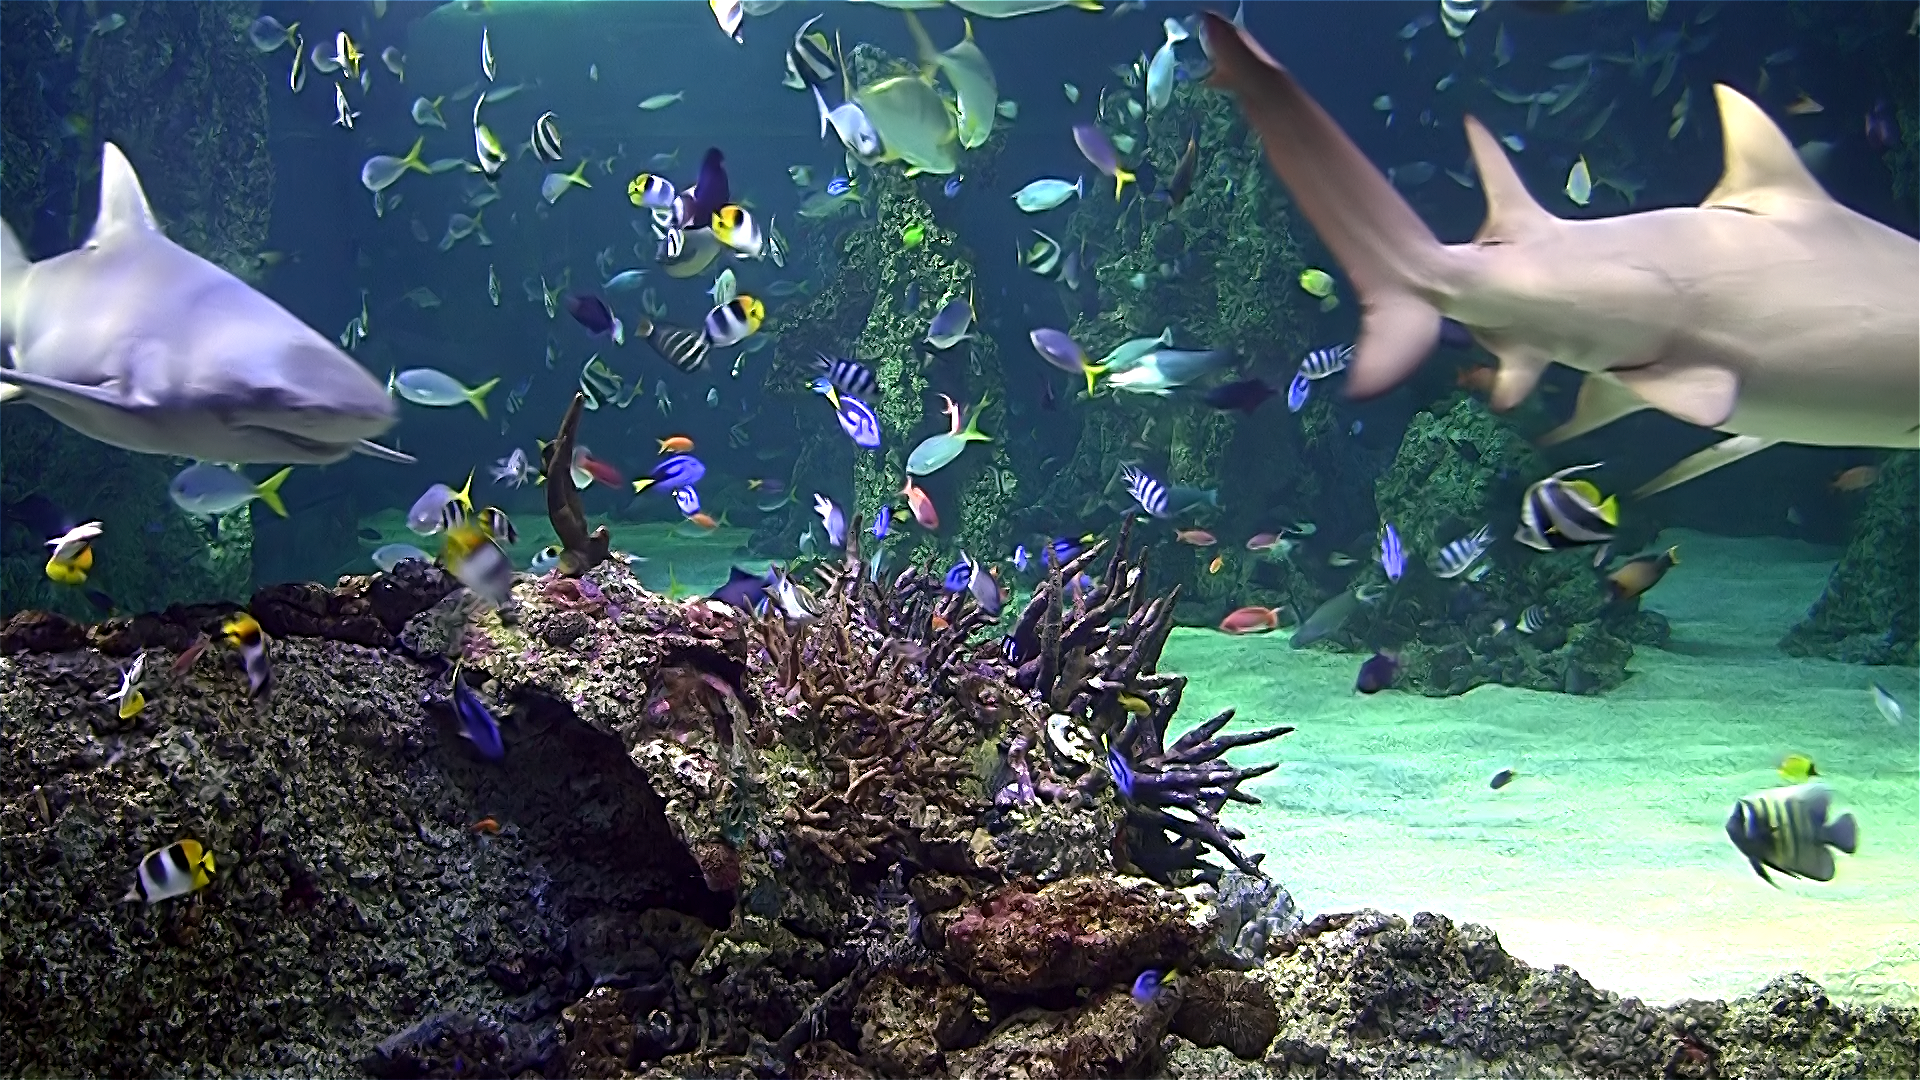 Aquarium live HD TV: Coral reef scenes with relaxing nature & ocean sounds for stress relief screenshot 1